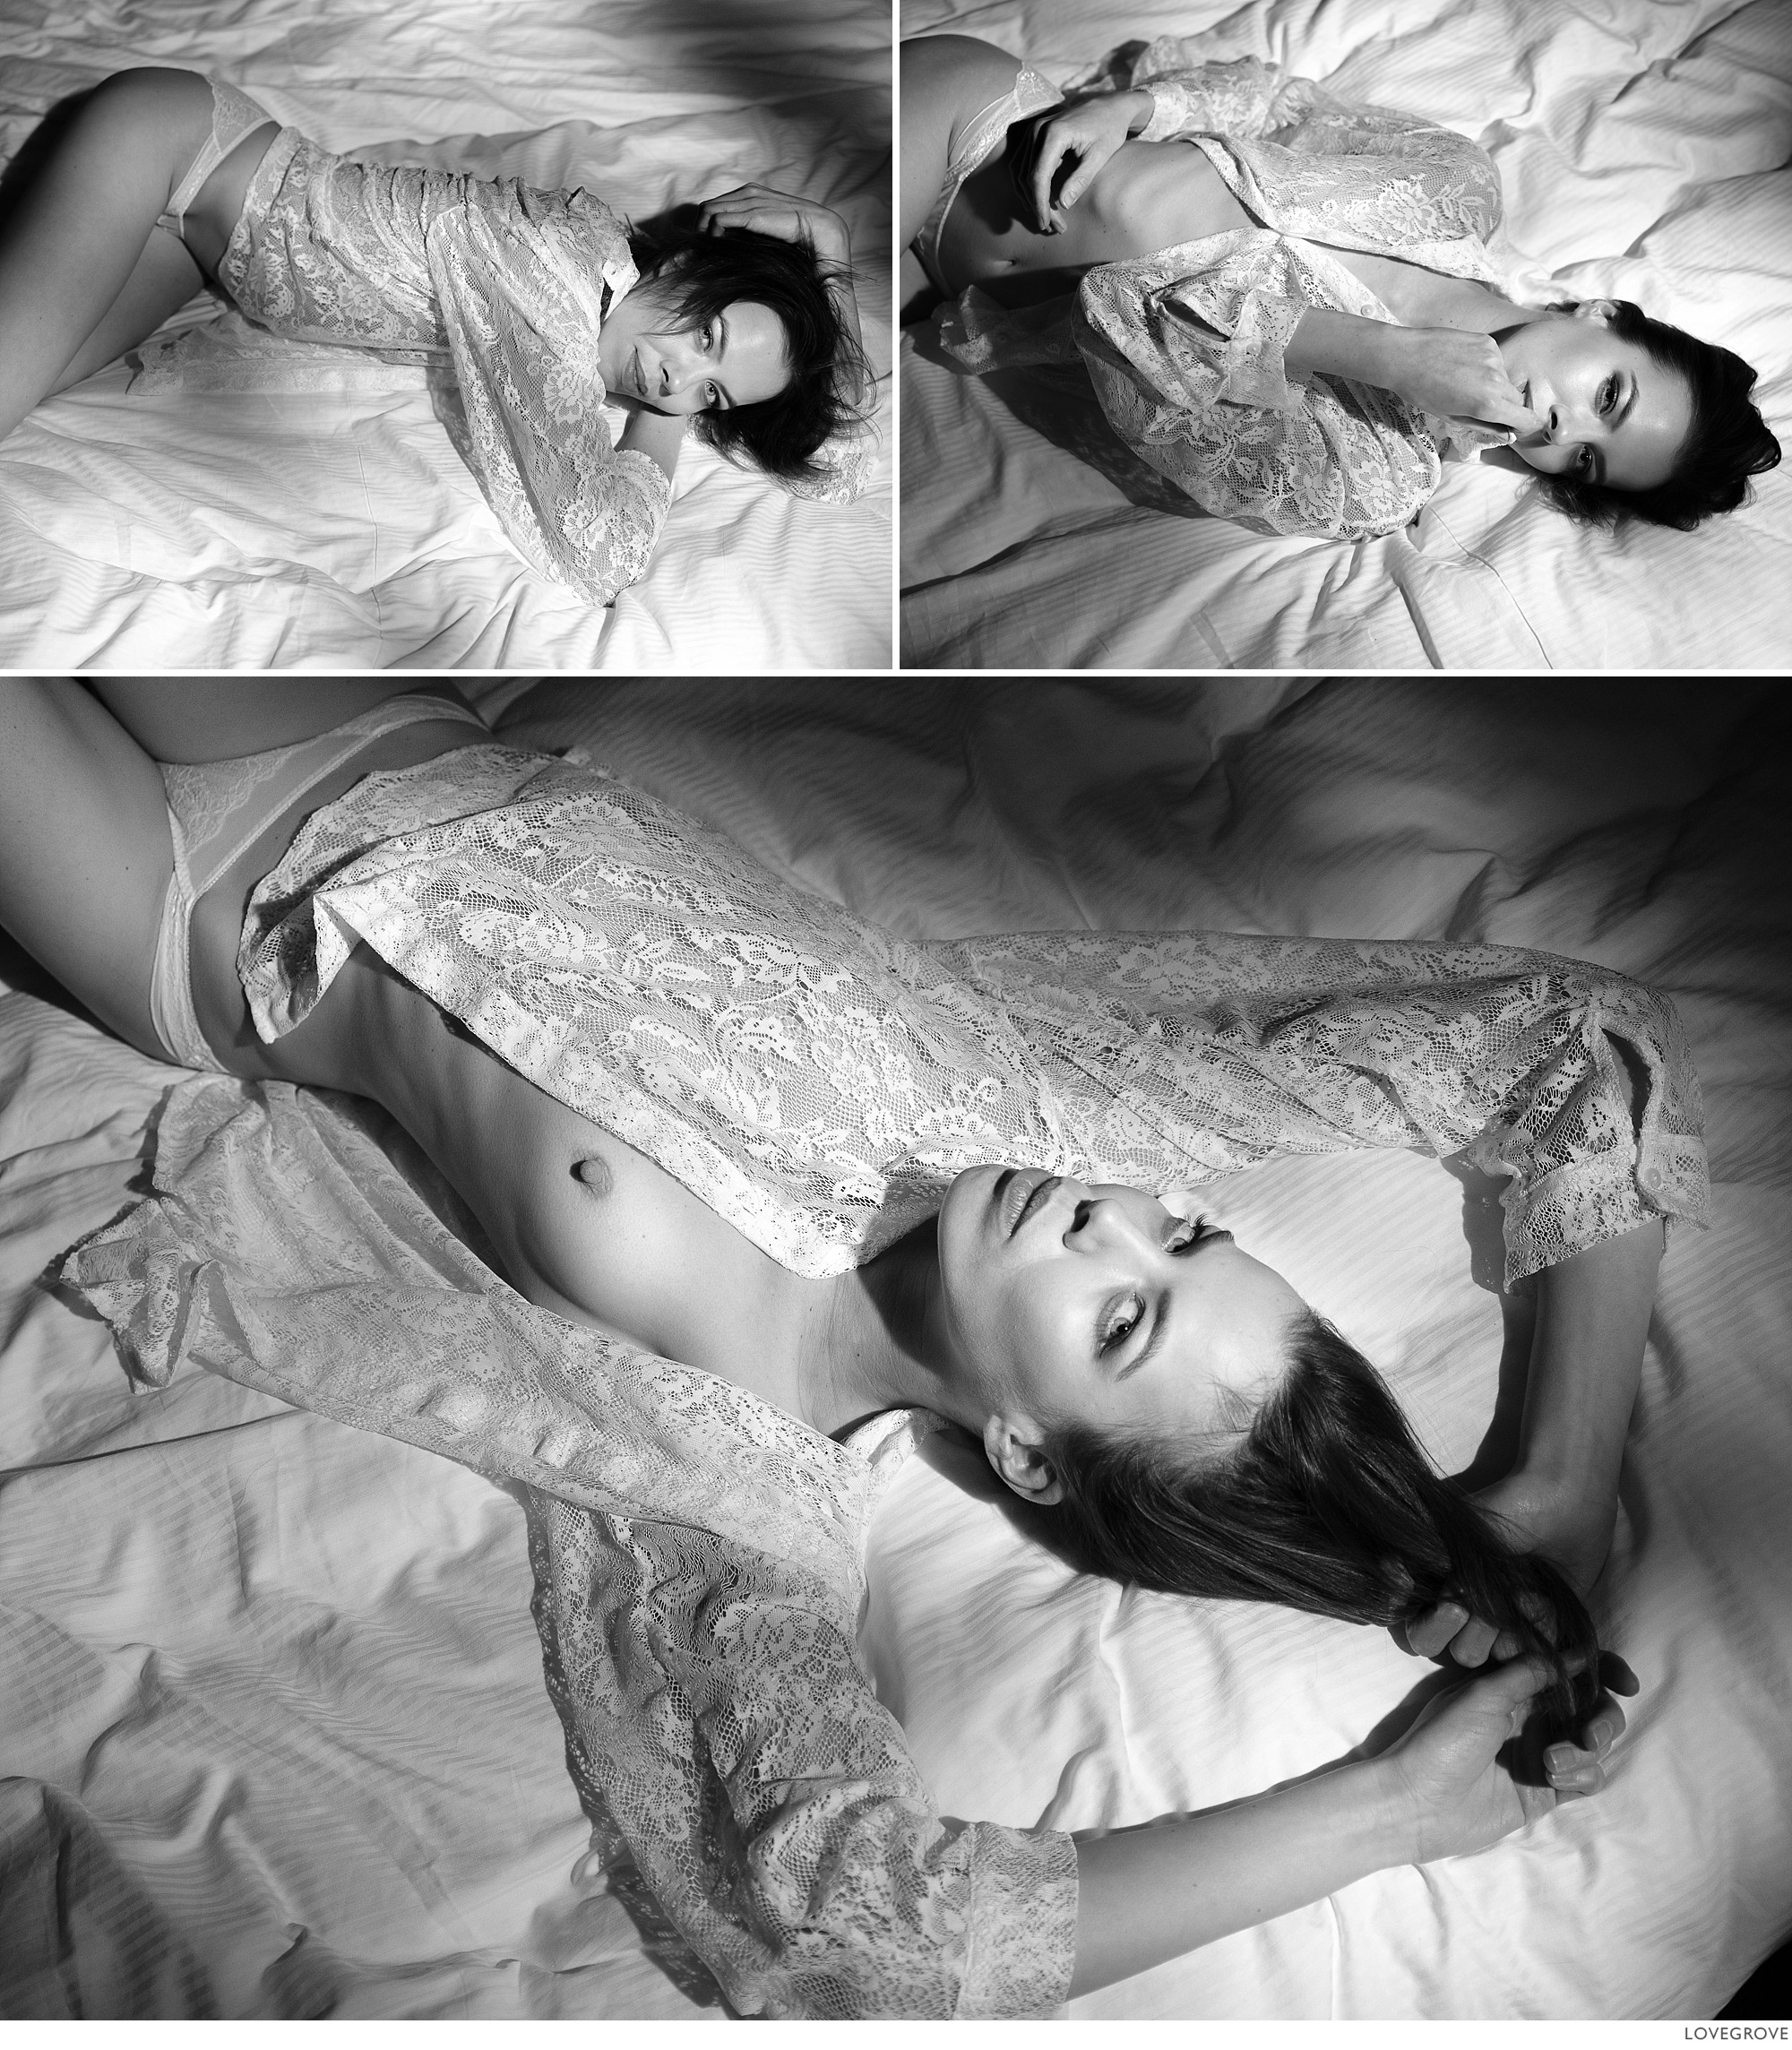 Denisa on a bed in monochrome.